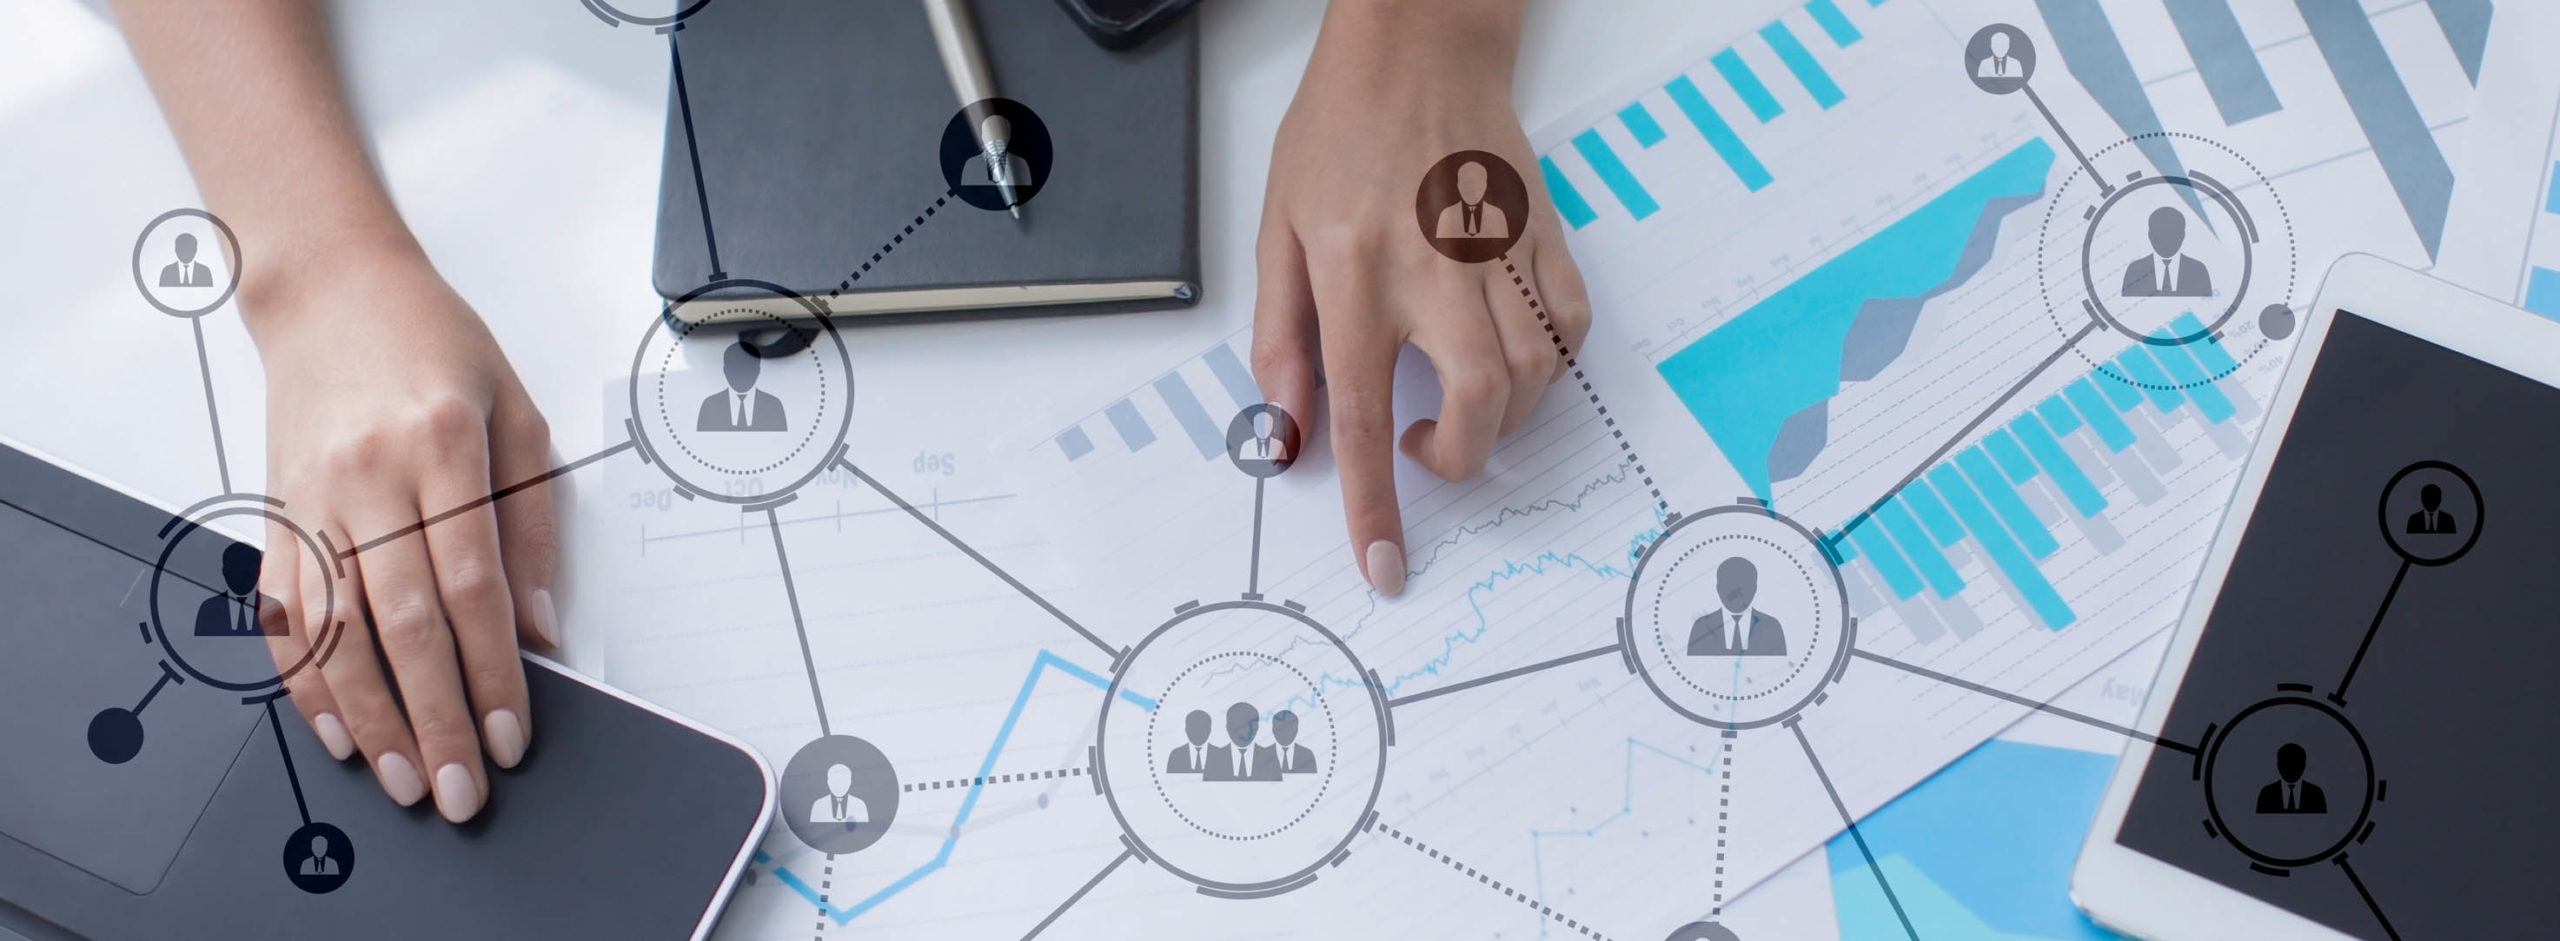 Management System as the Key Driver of Business Entities' Success